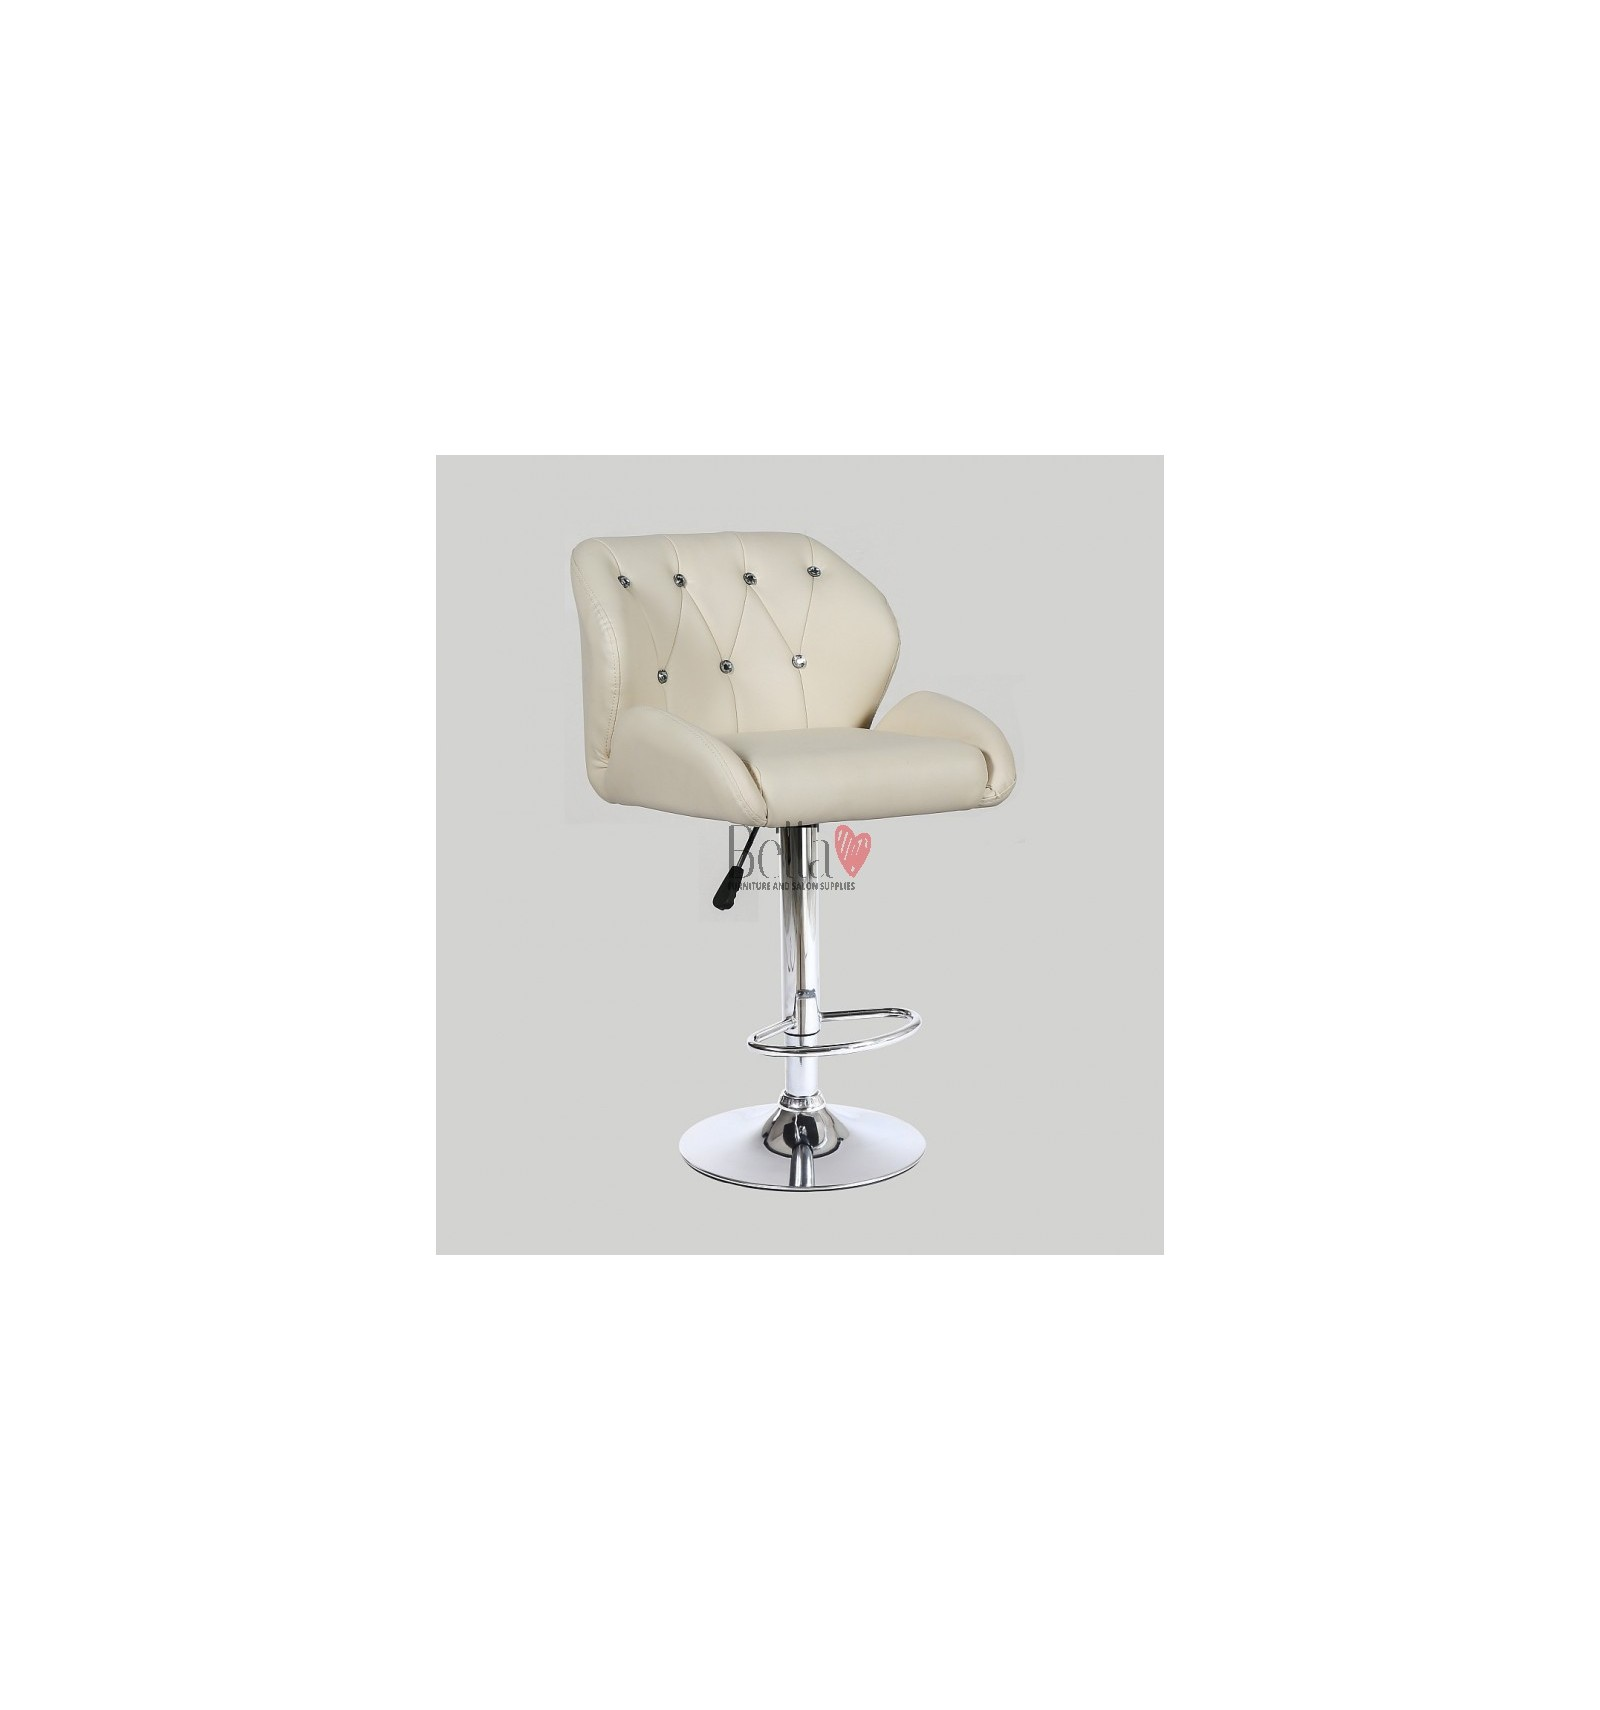 810407032067 Cream Makeup and reception high chairs for sale. High makeup chairs  Ireland. Cream BFHC949W